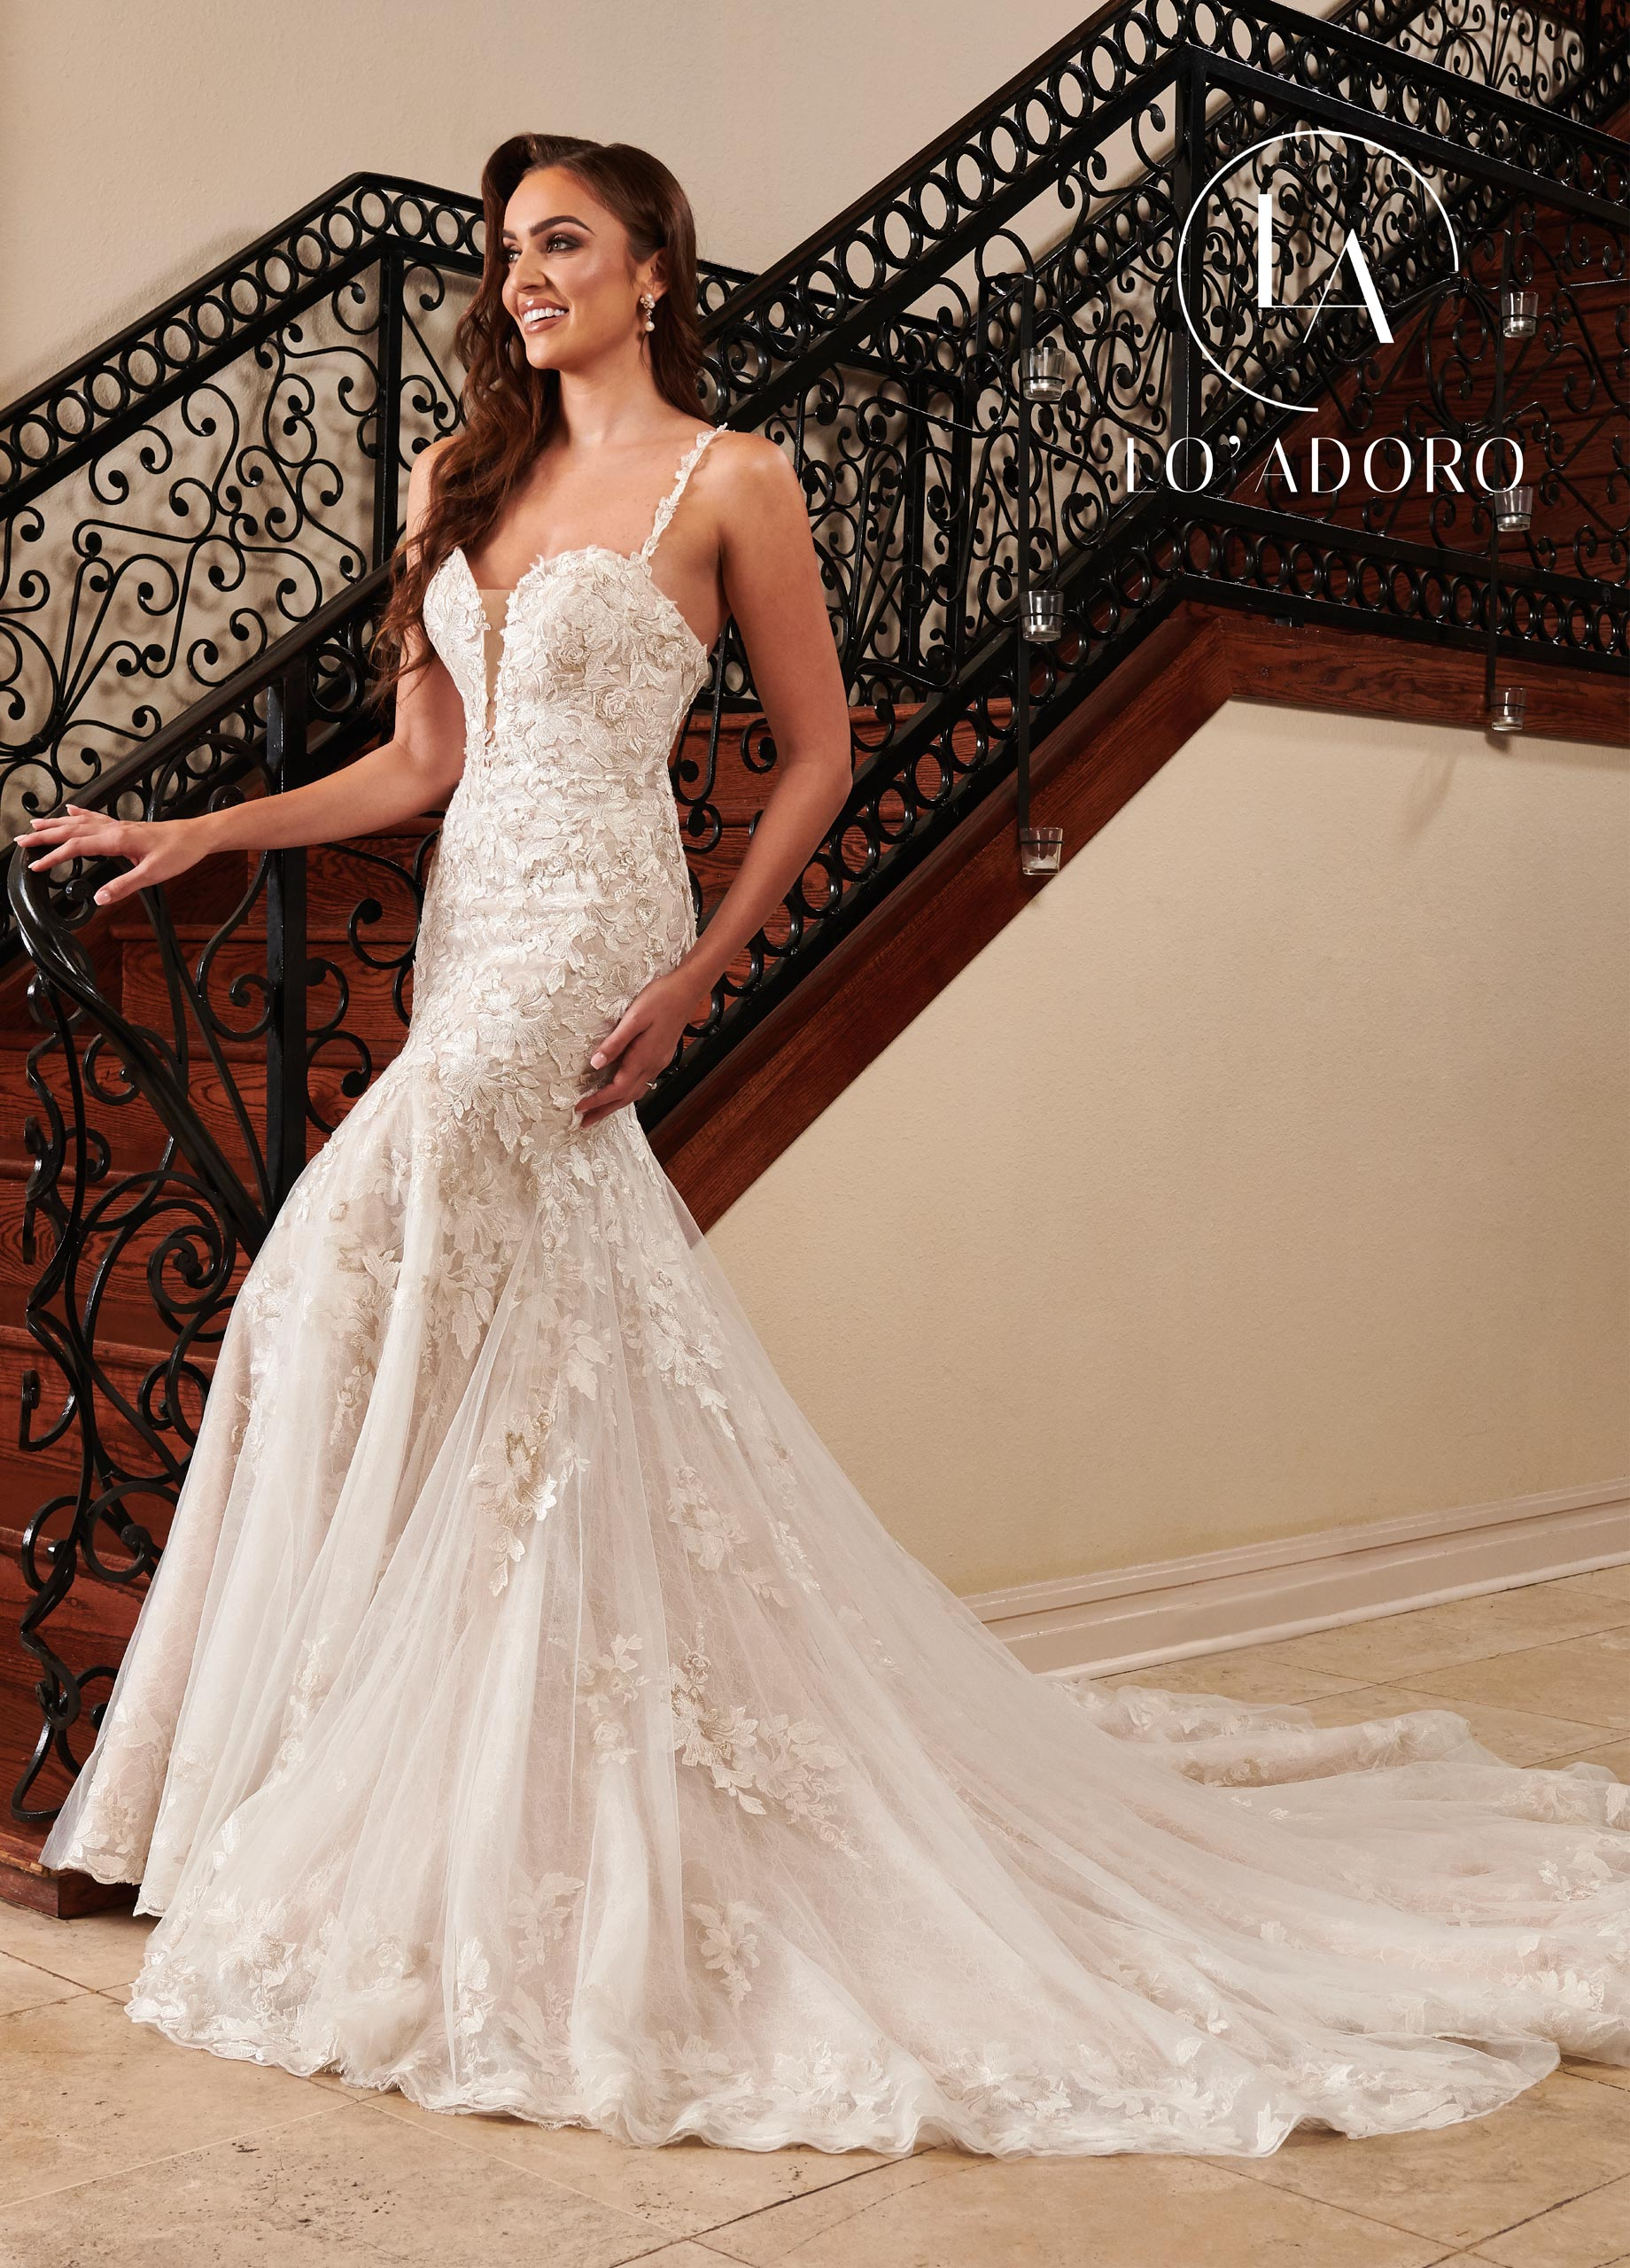 Sweetheart Fit & Flare Lo' Adoro Bridal in White Color